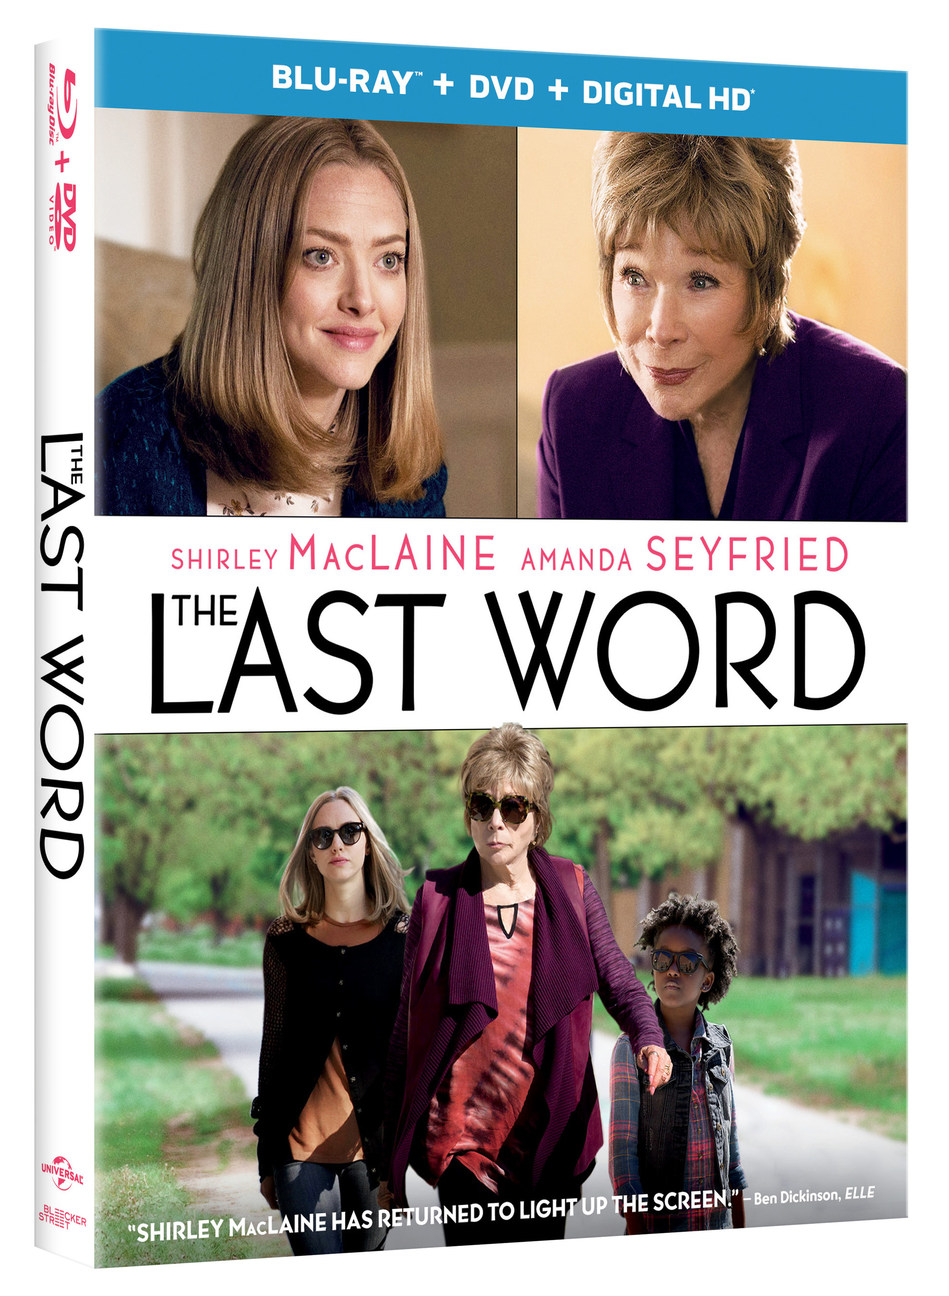 THE LAST WORD Blu-ray